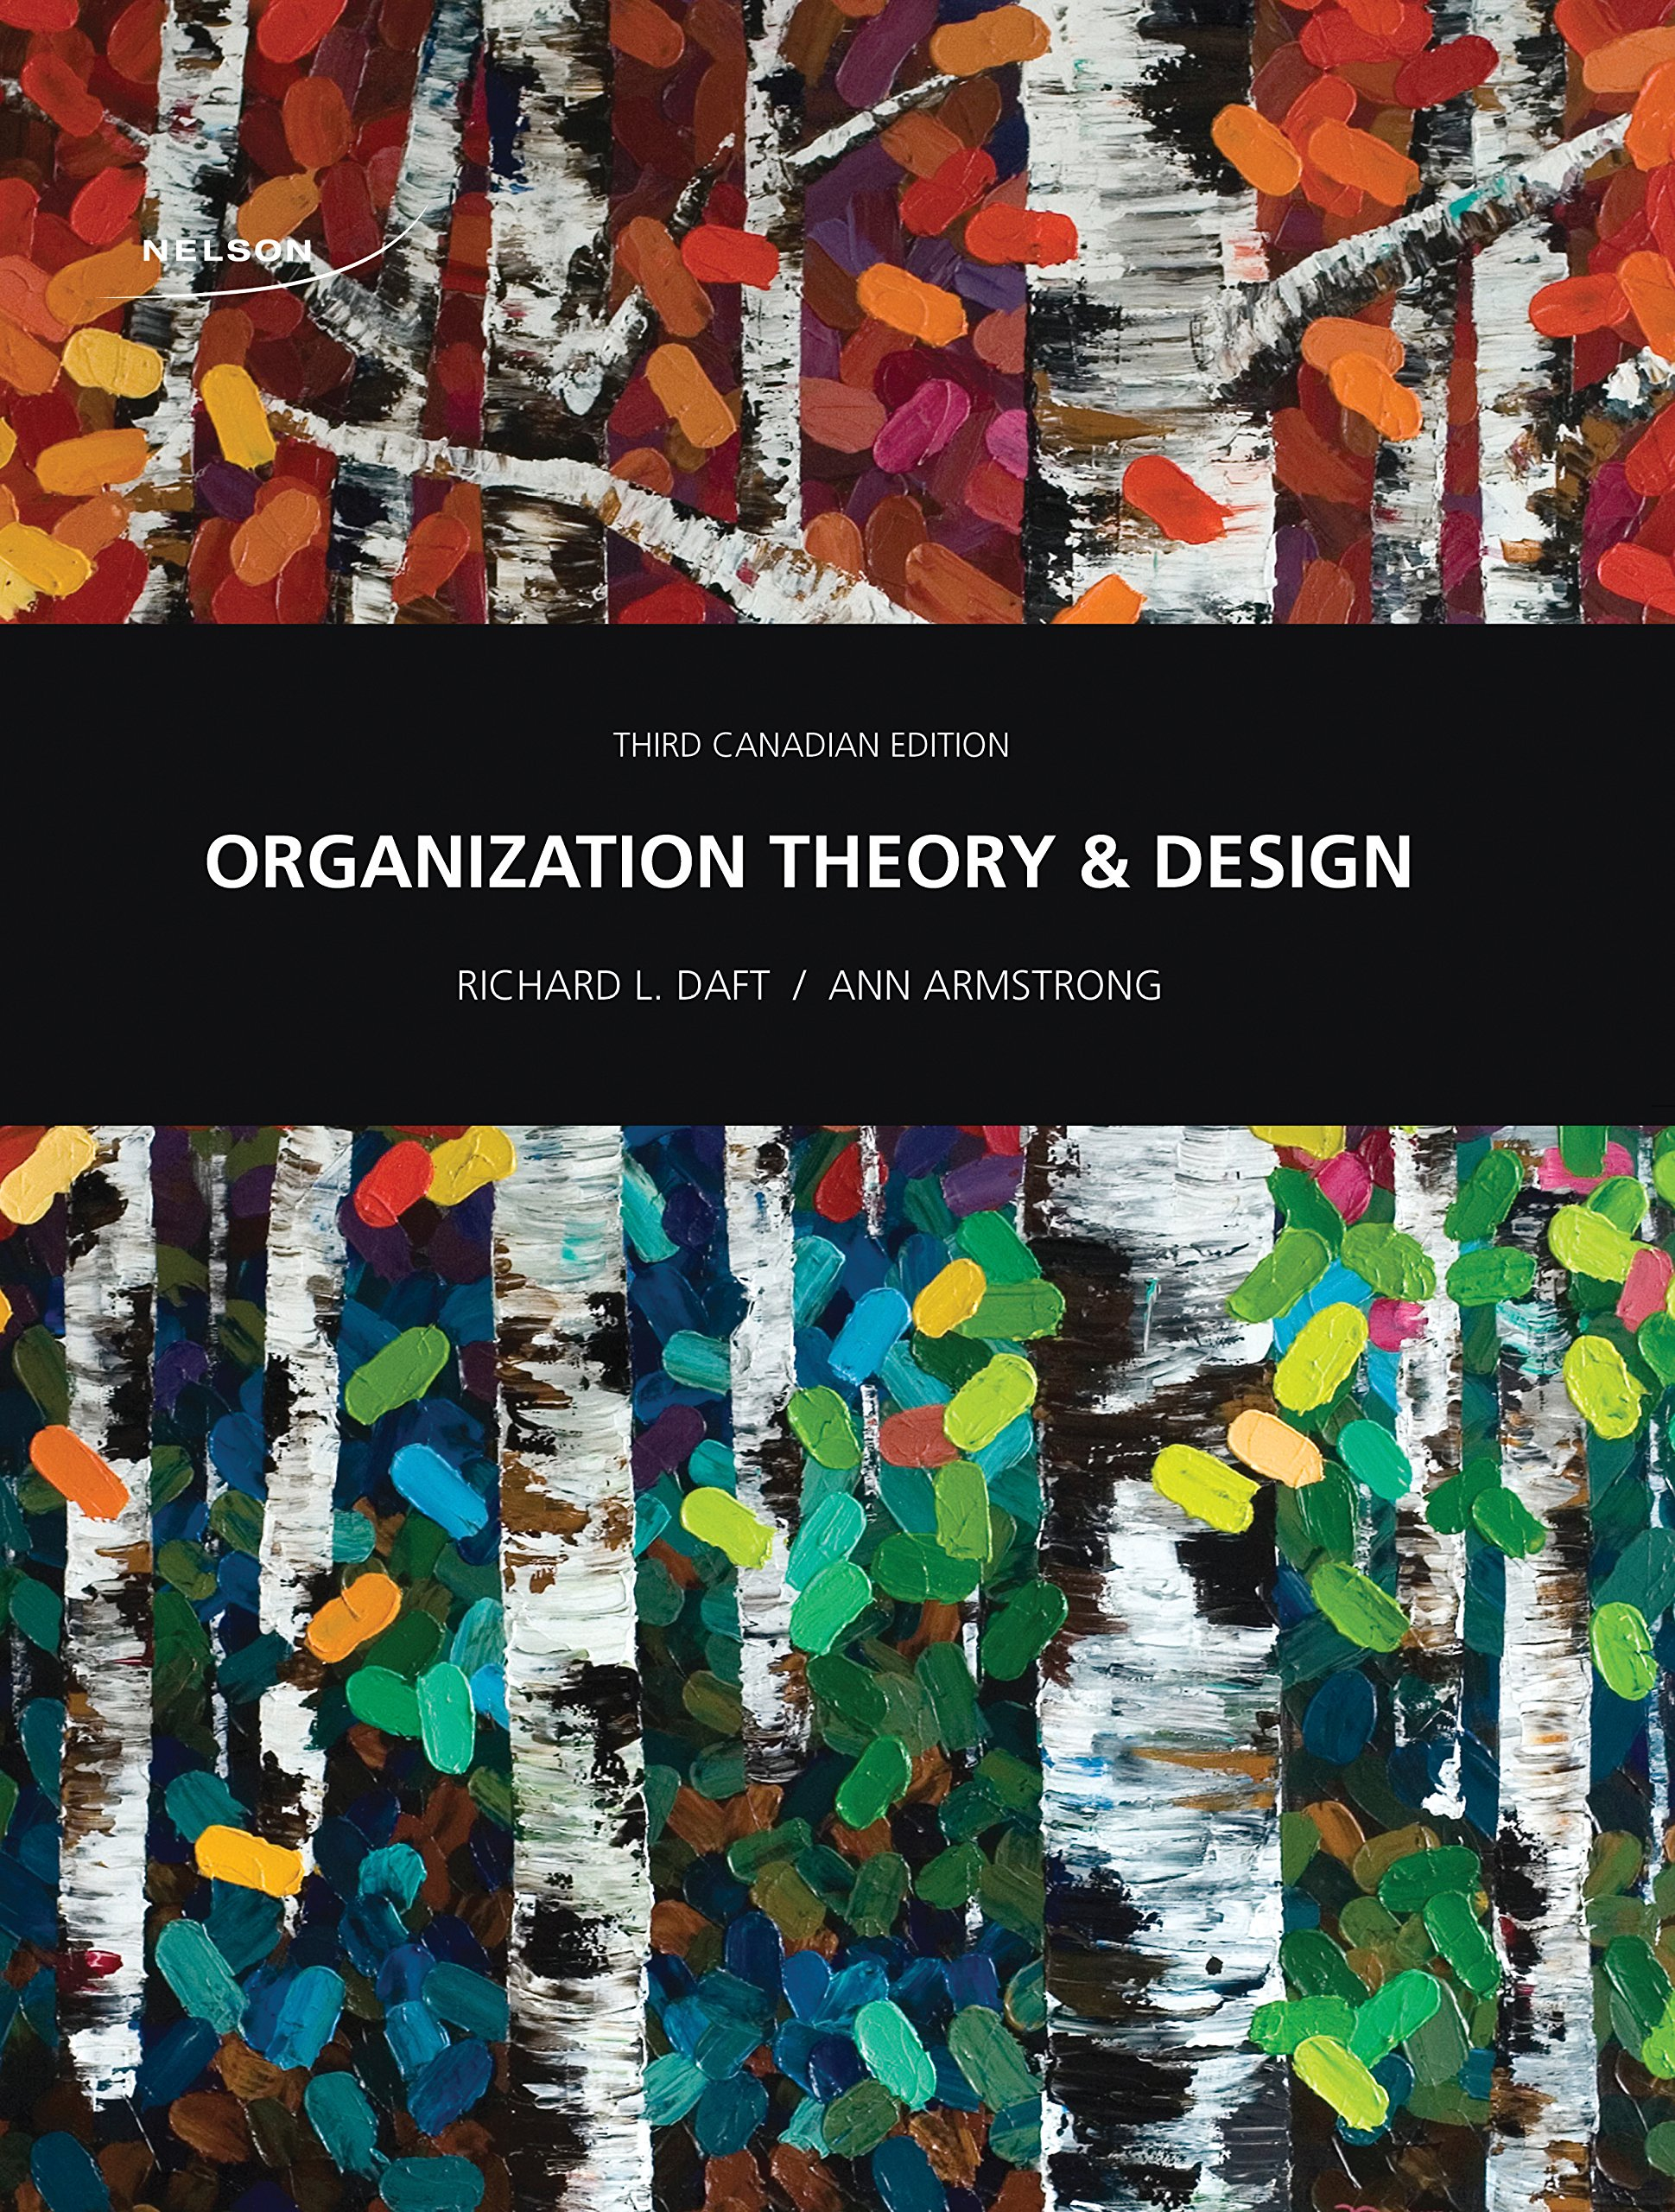 Organization Theory And Design Richard L Daft Author Ann Armstrong Author 9780176532208 Amazon Com Books